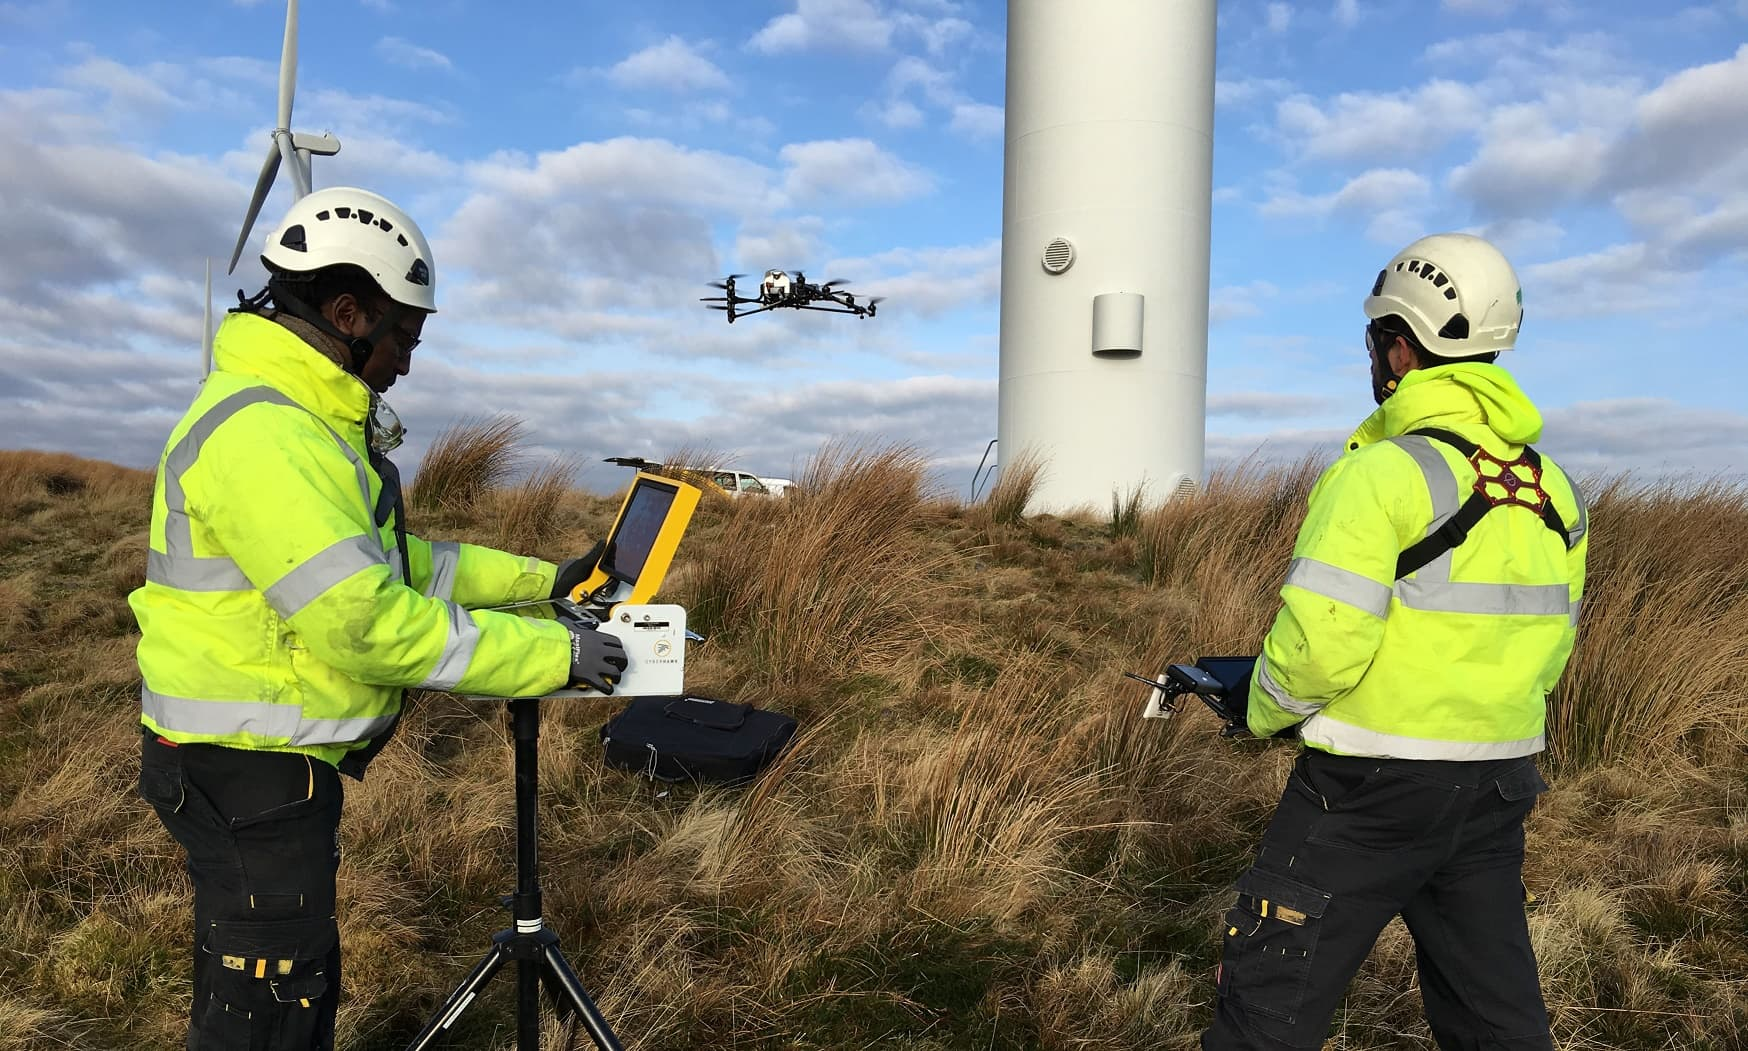 Cyberhawk-Innovations- Cyberhawk Touts Success for Drones in Wind Power